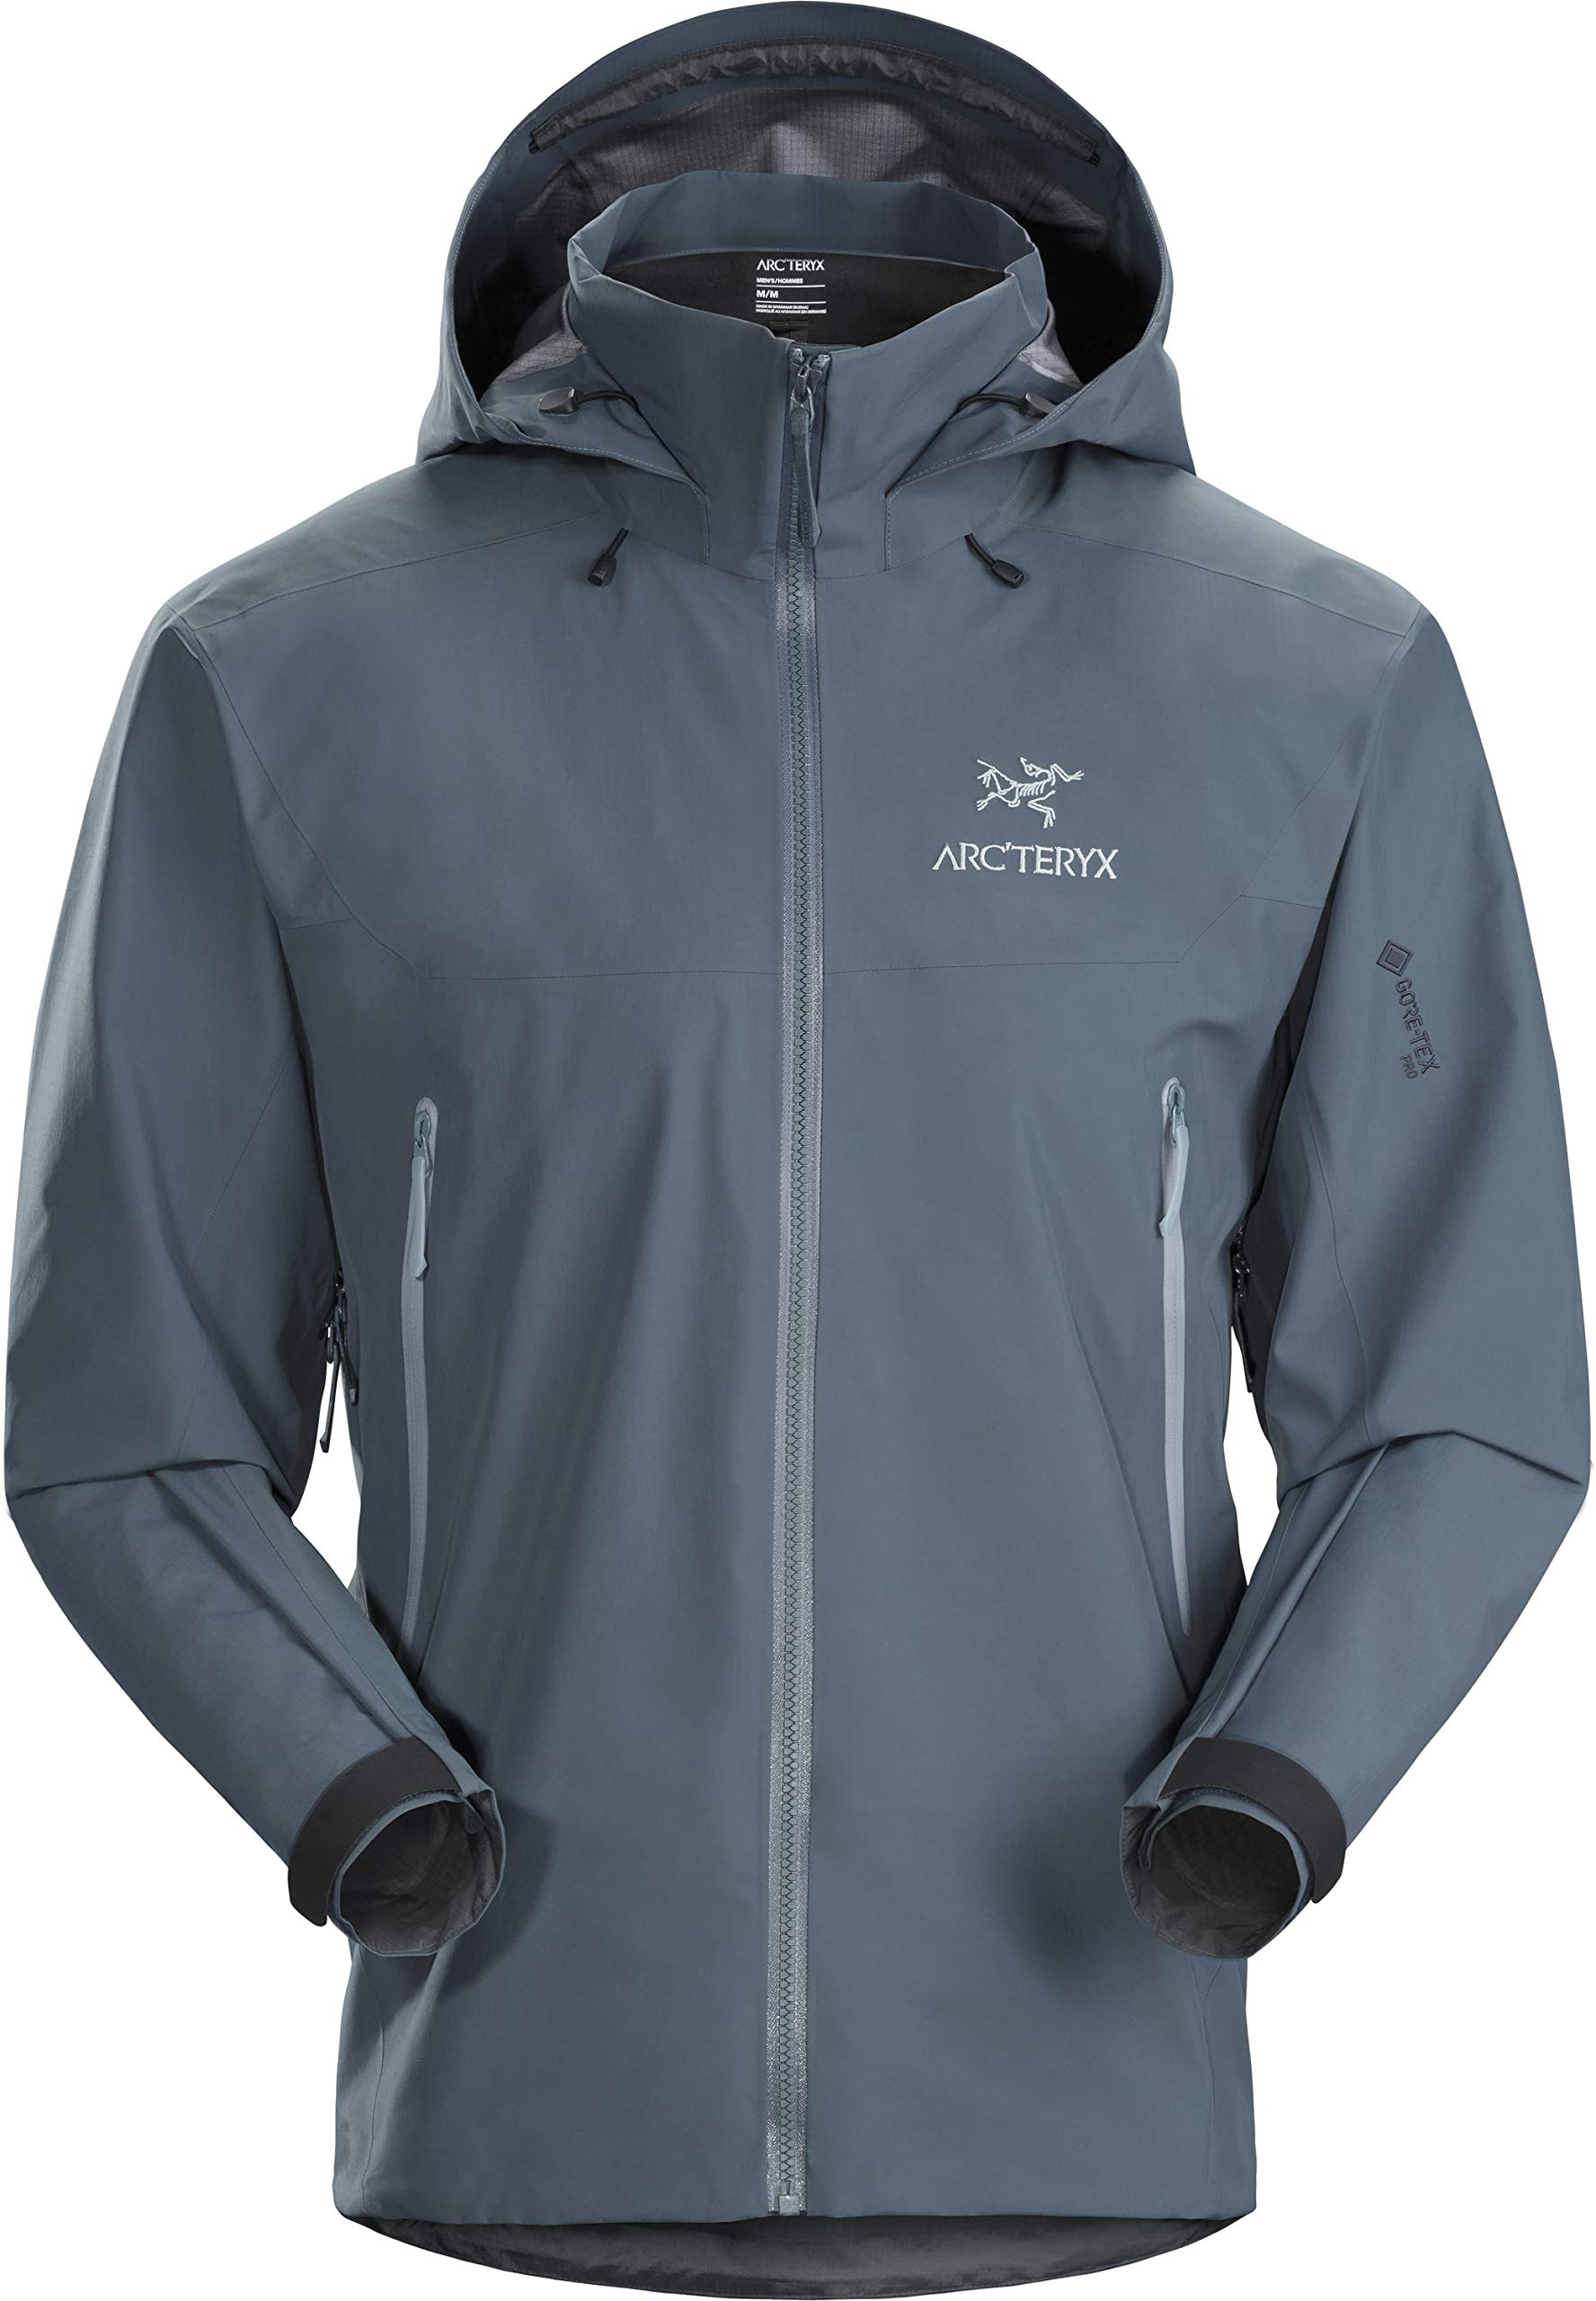 Arc'teryx Beta AR Jacket Men's (Neptune, X-Small) by Arc'teryx